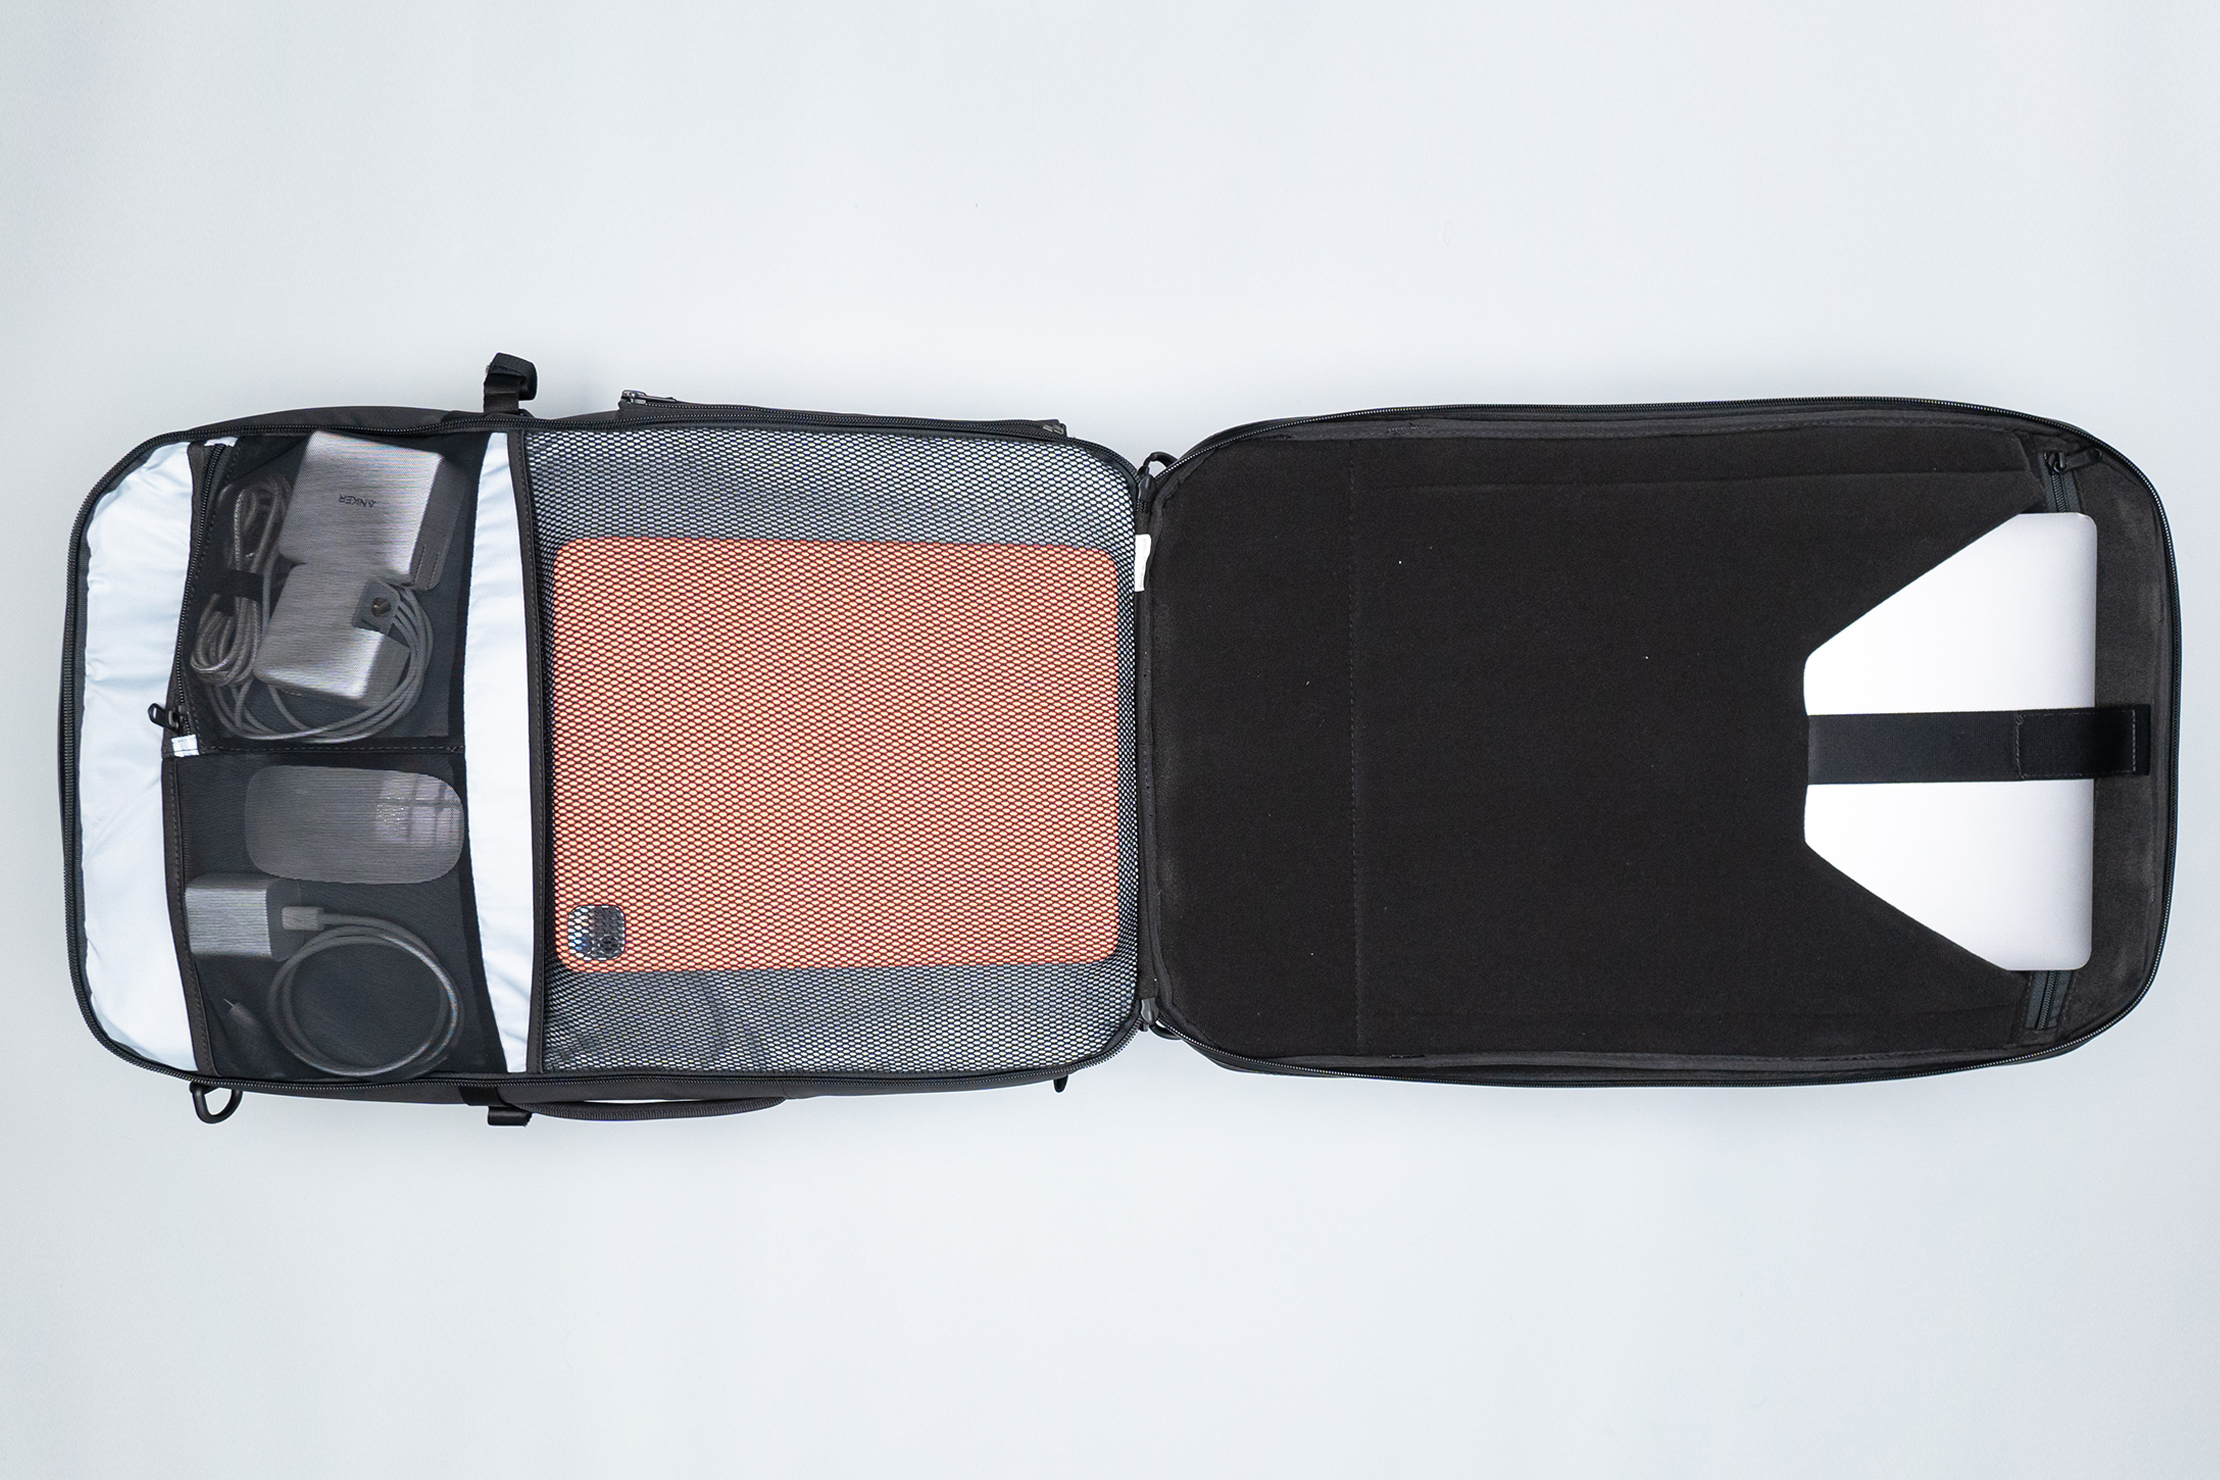 Gravel Backpack Travel System 42L Tech Compartment